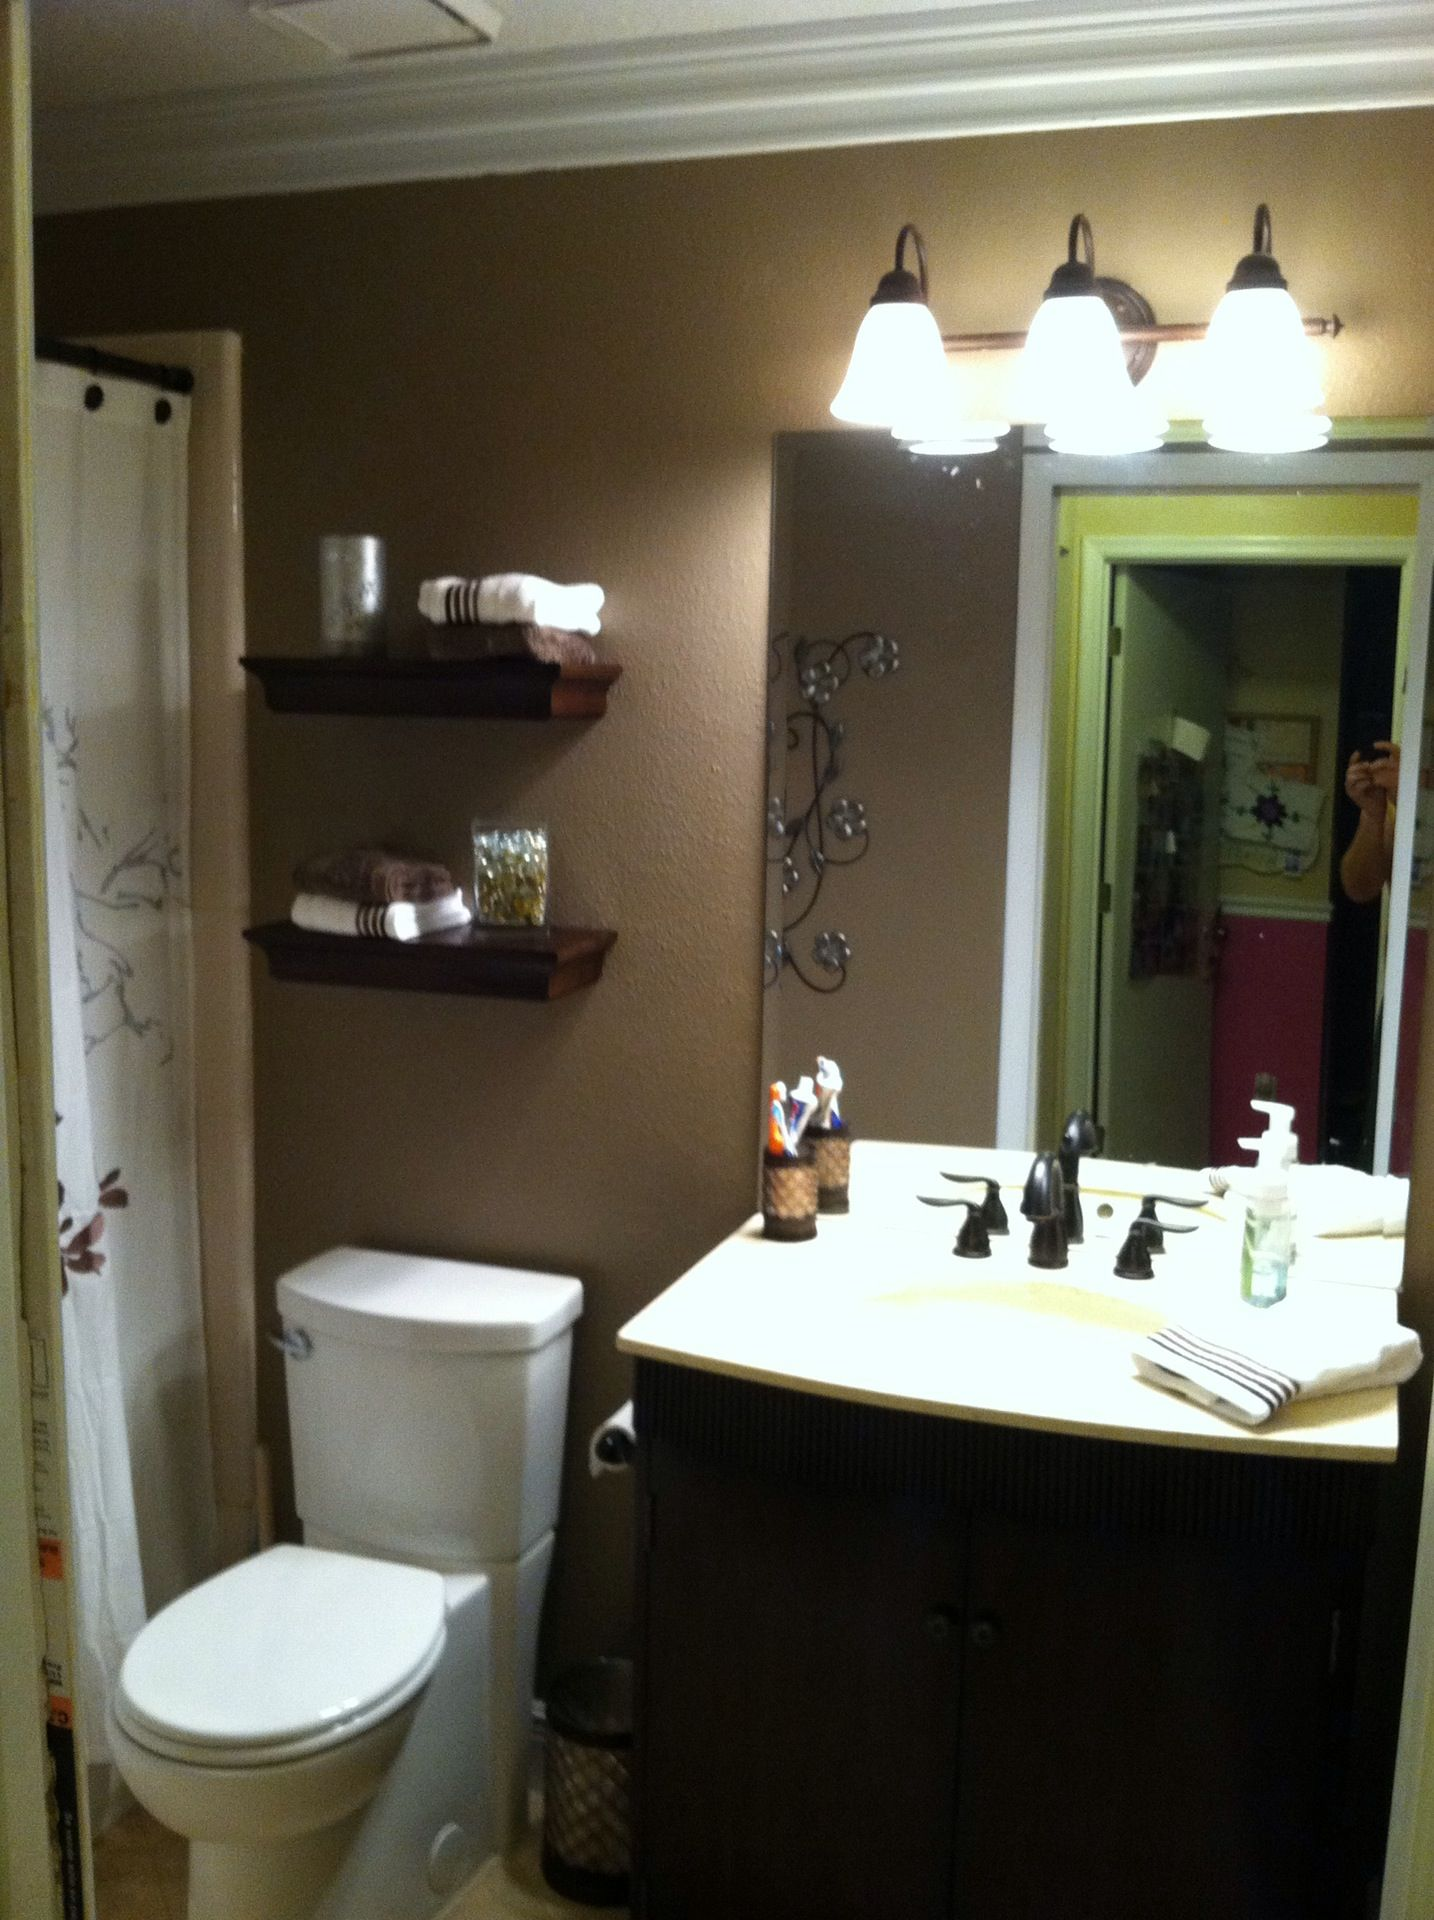 Small bathroom remodel ideas bathroom ideas pinterest for Bathroom redesign images